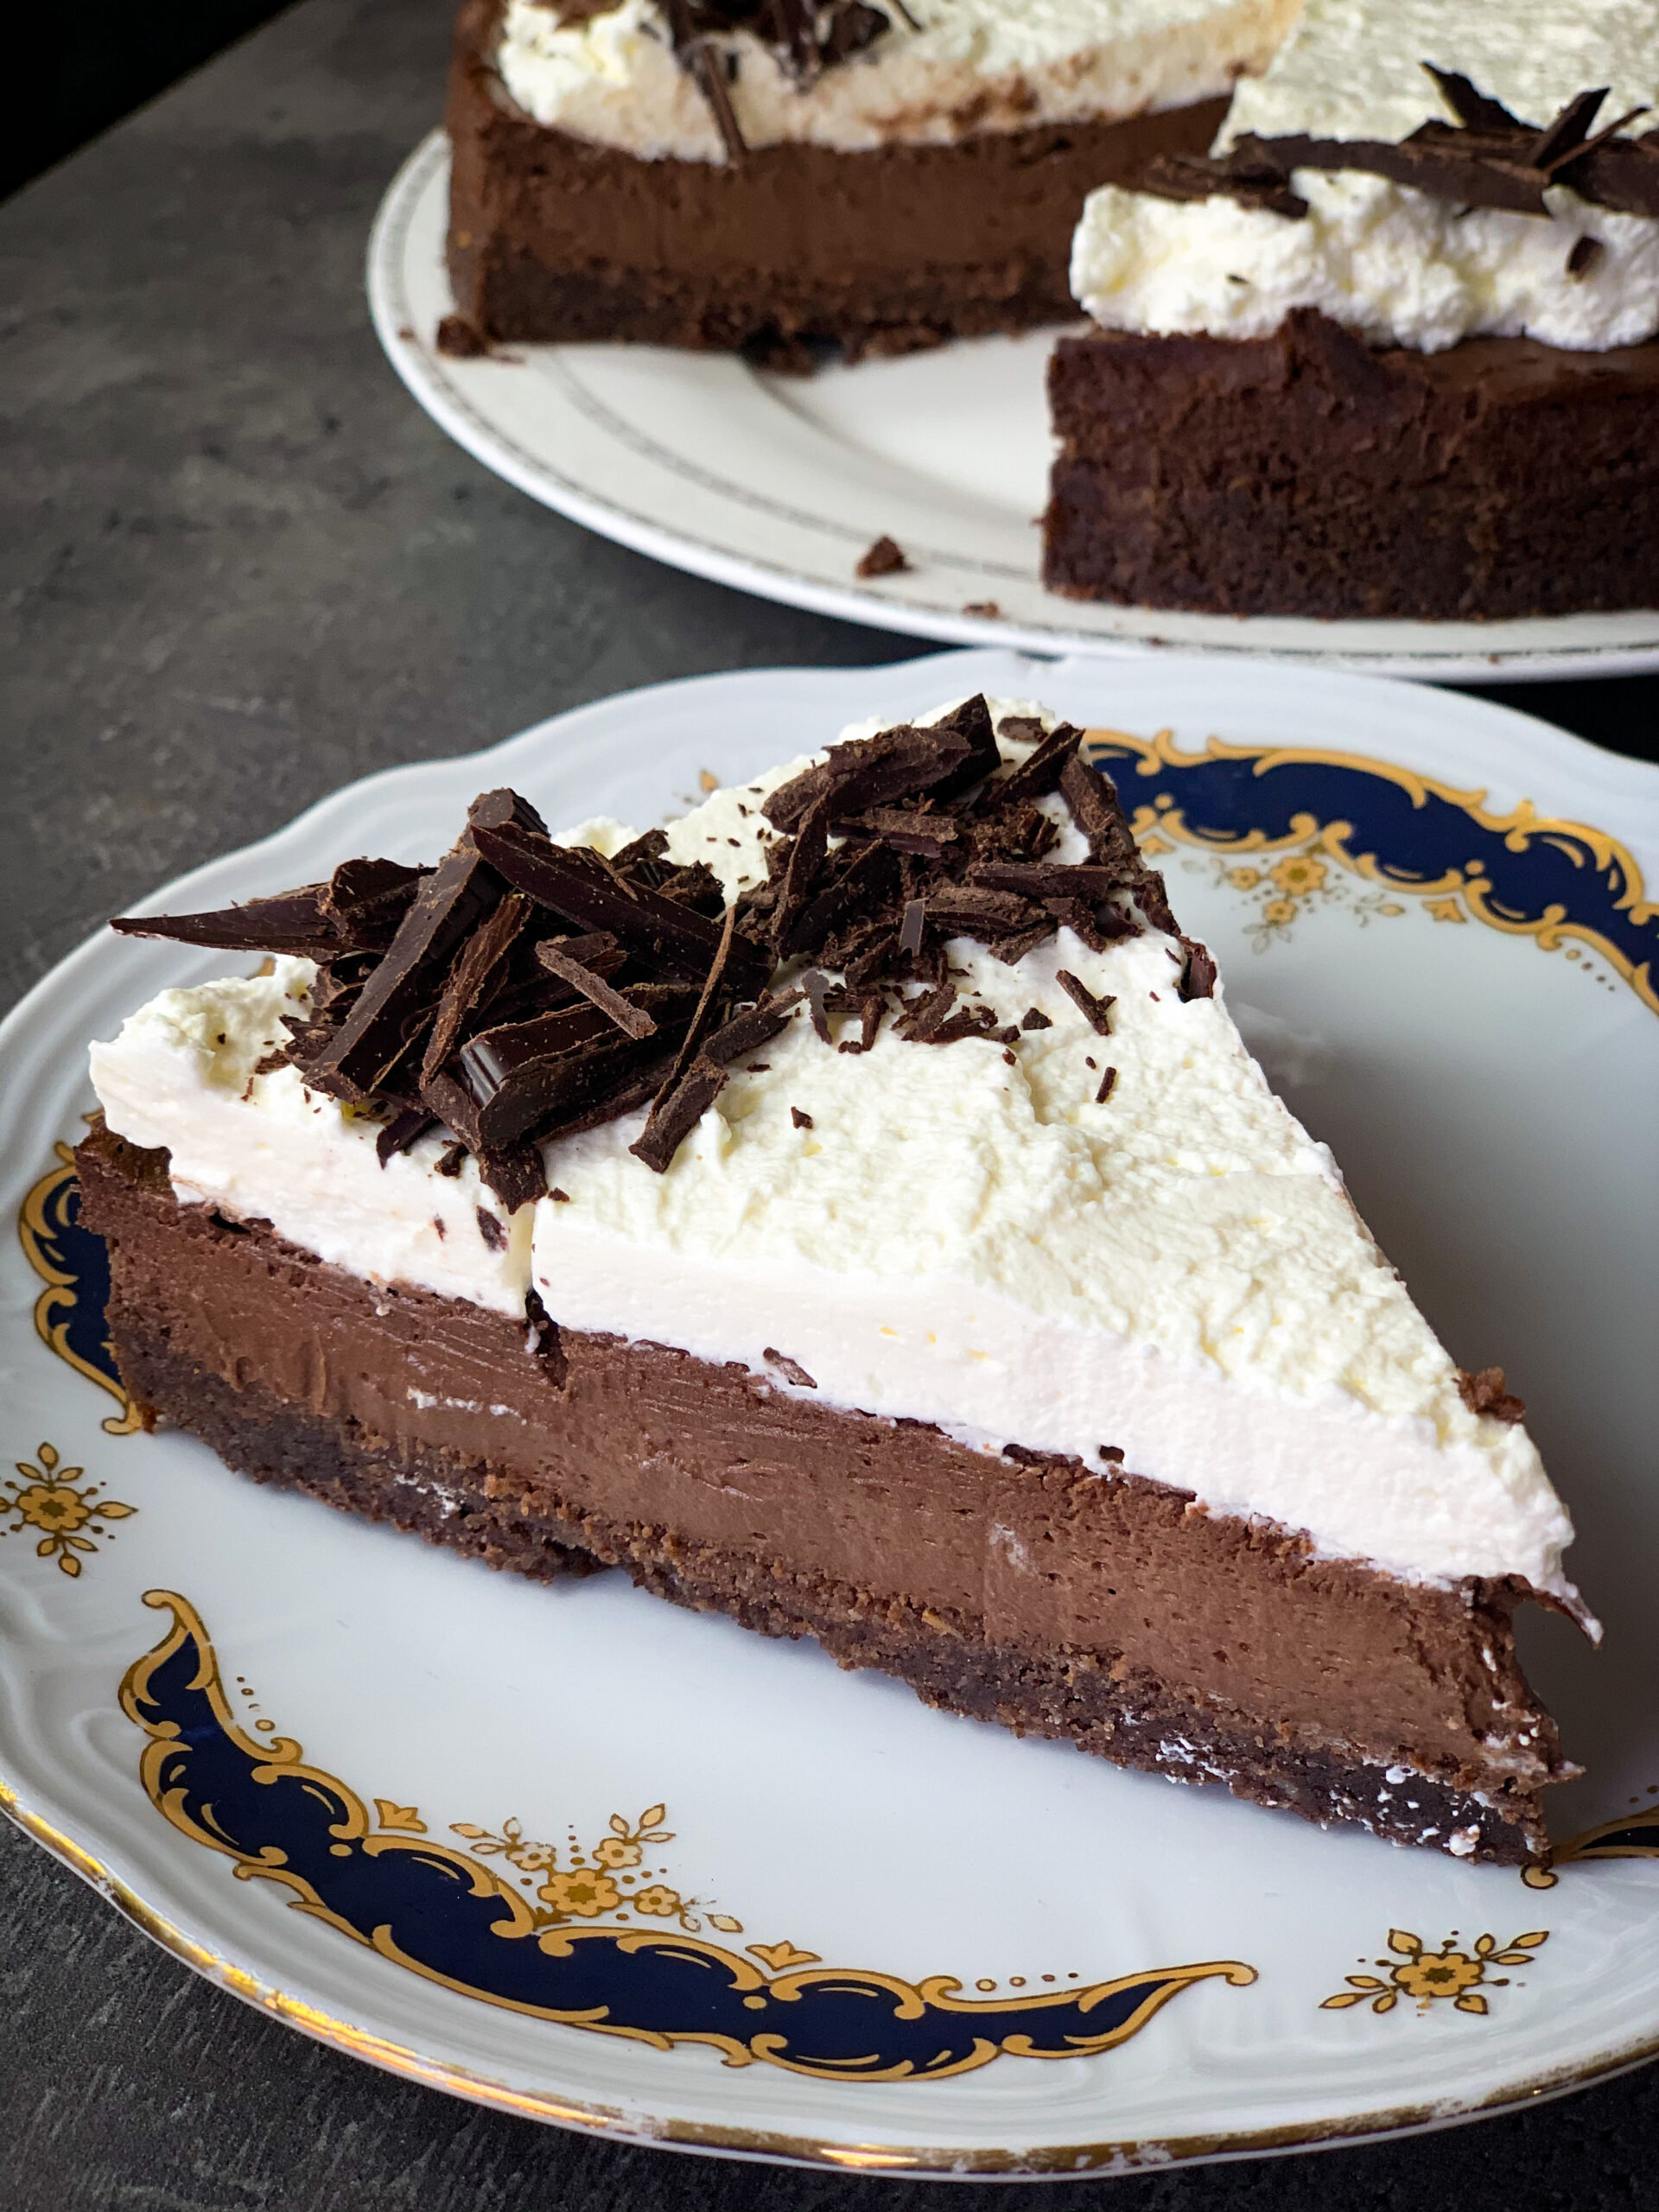 Picture of a keto chocolate cake with cream topping